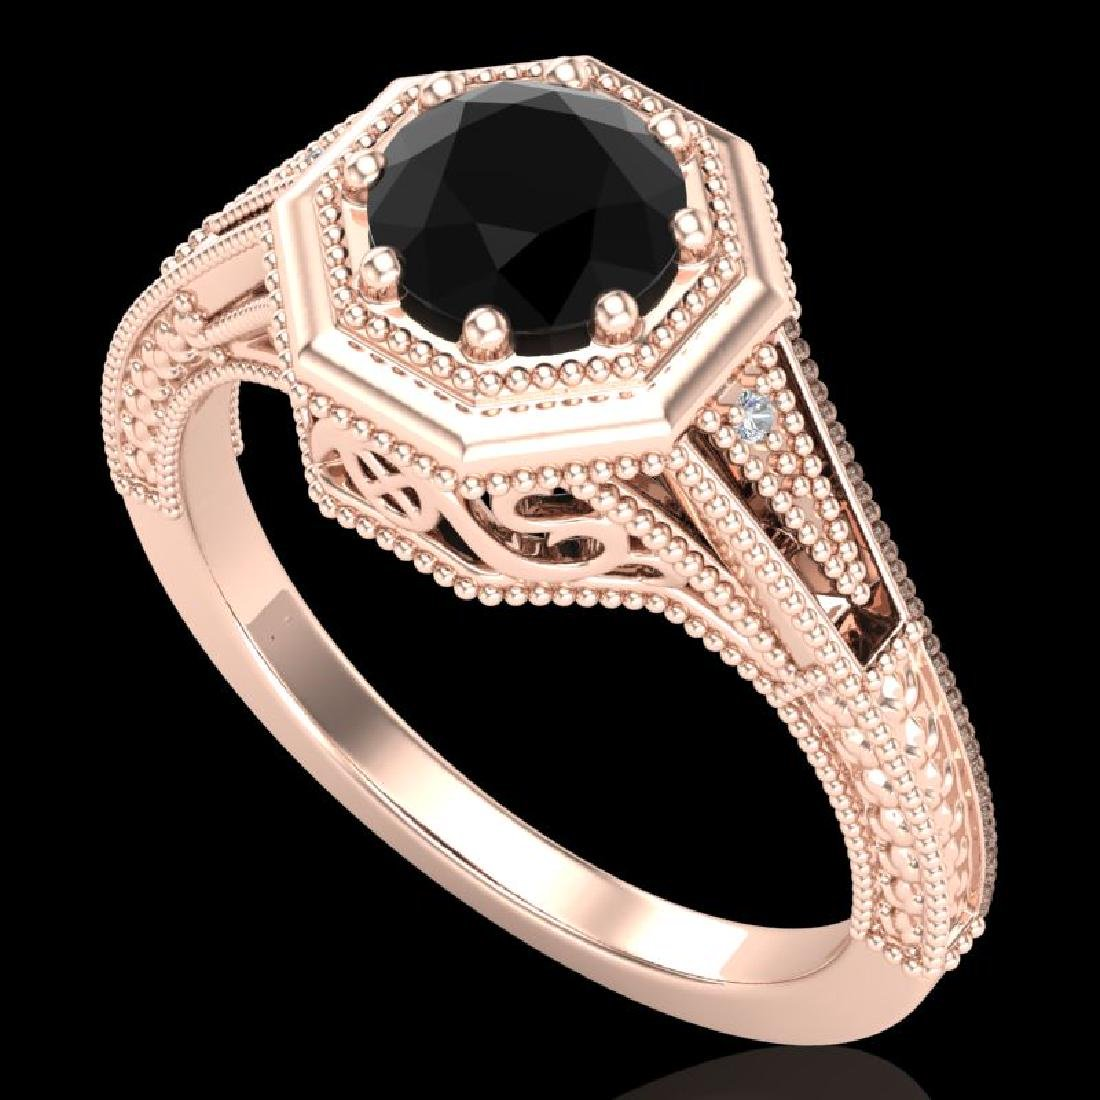 0.84 CTW Fancy Black Diamond Solitaire Engagement Art